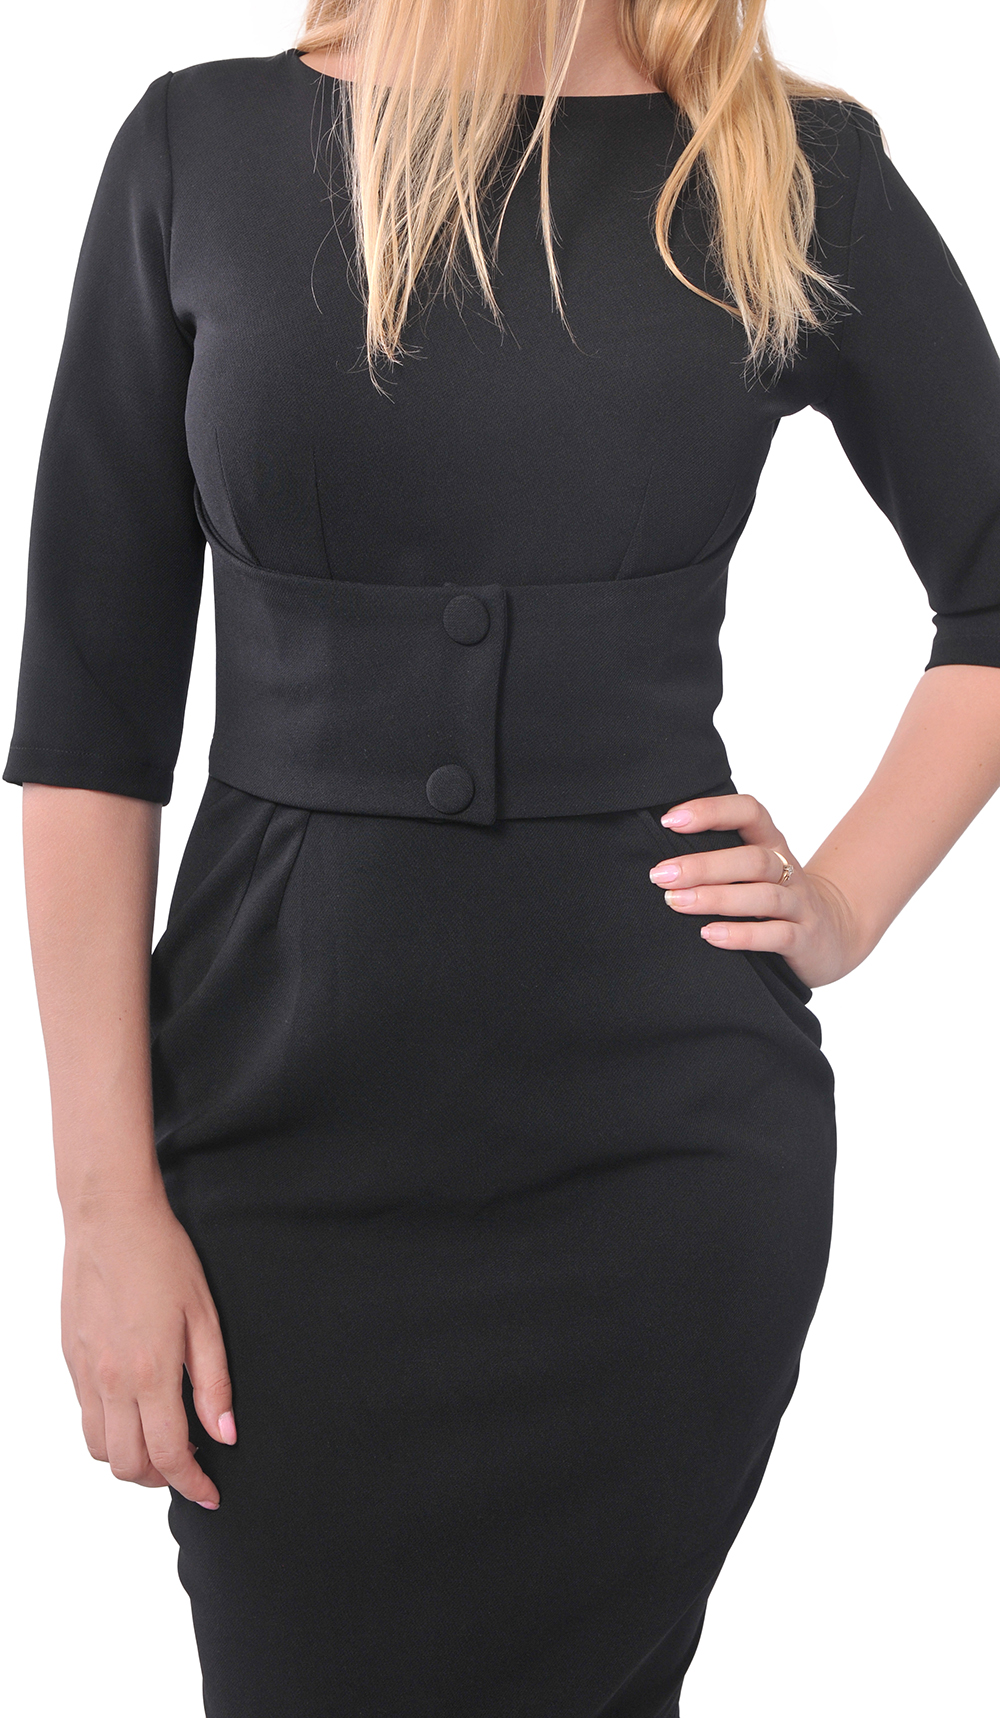 3eeafcd1db CLASSY WORK OFFICE WIGGLE PENCIL DRESS Classic VINTAGE 1950S 1960S ...